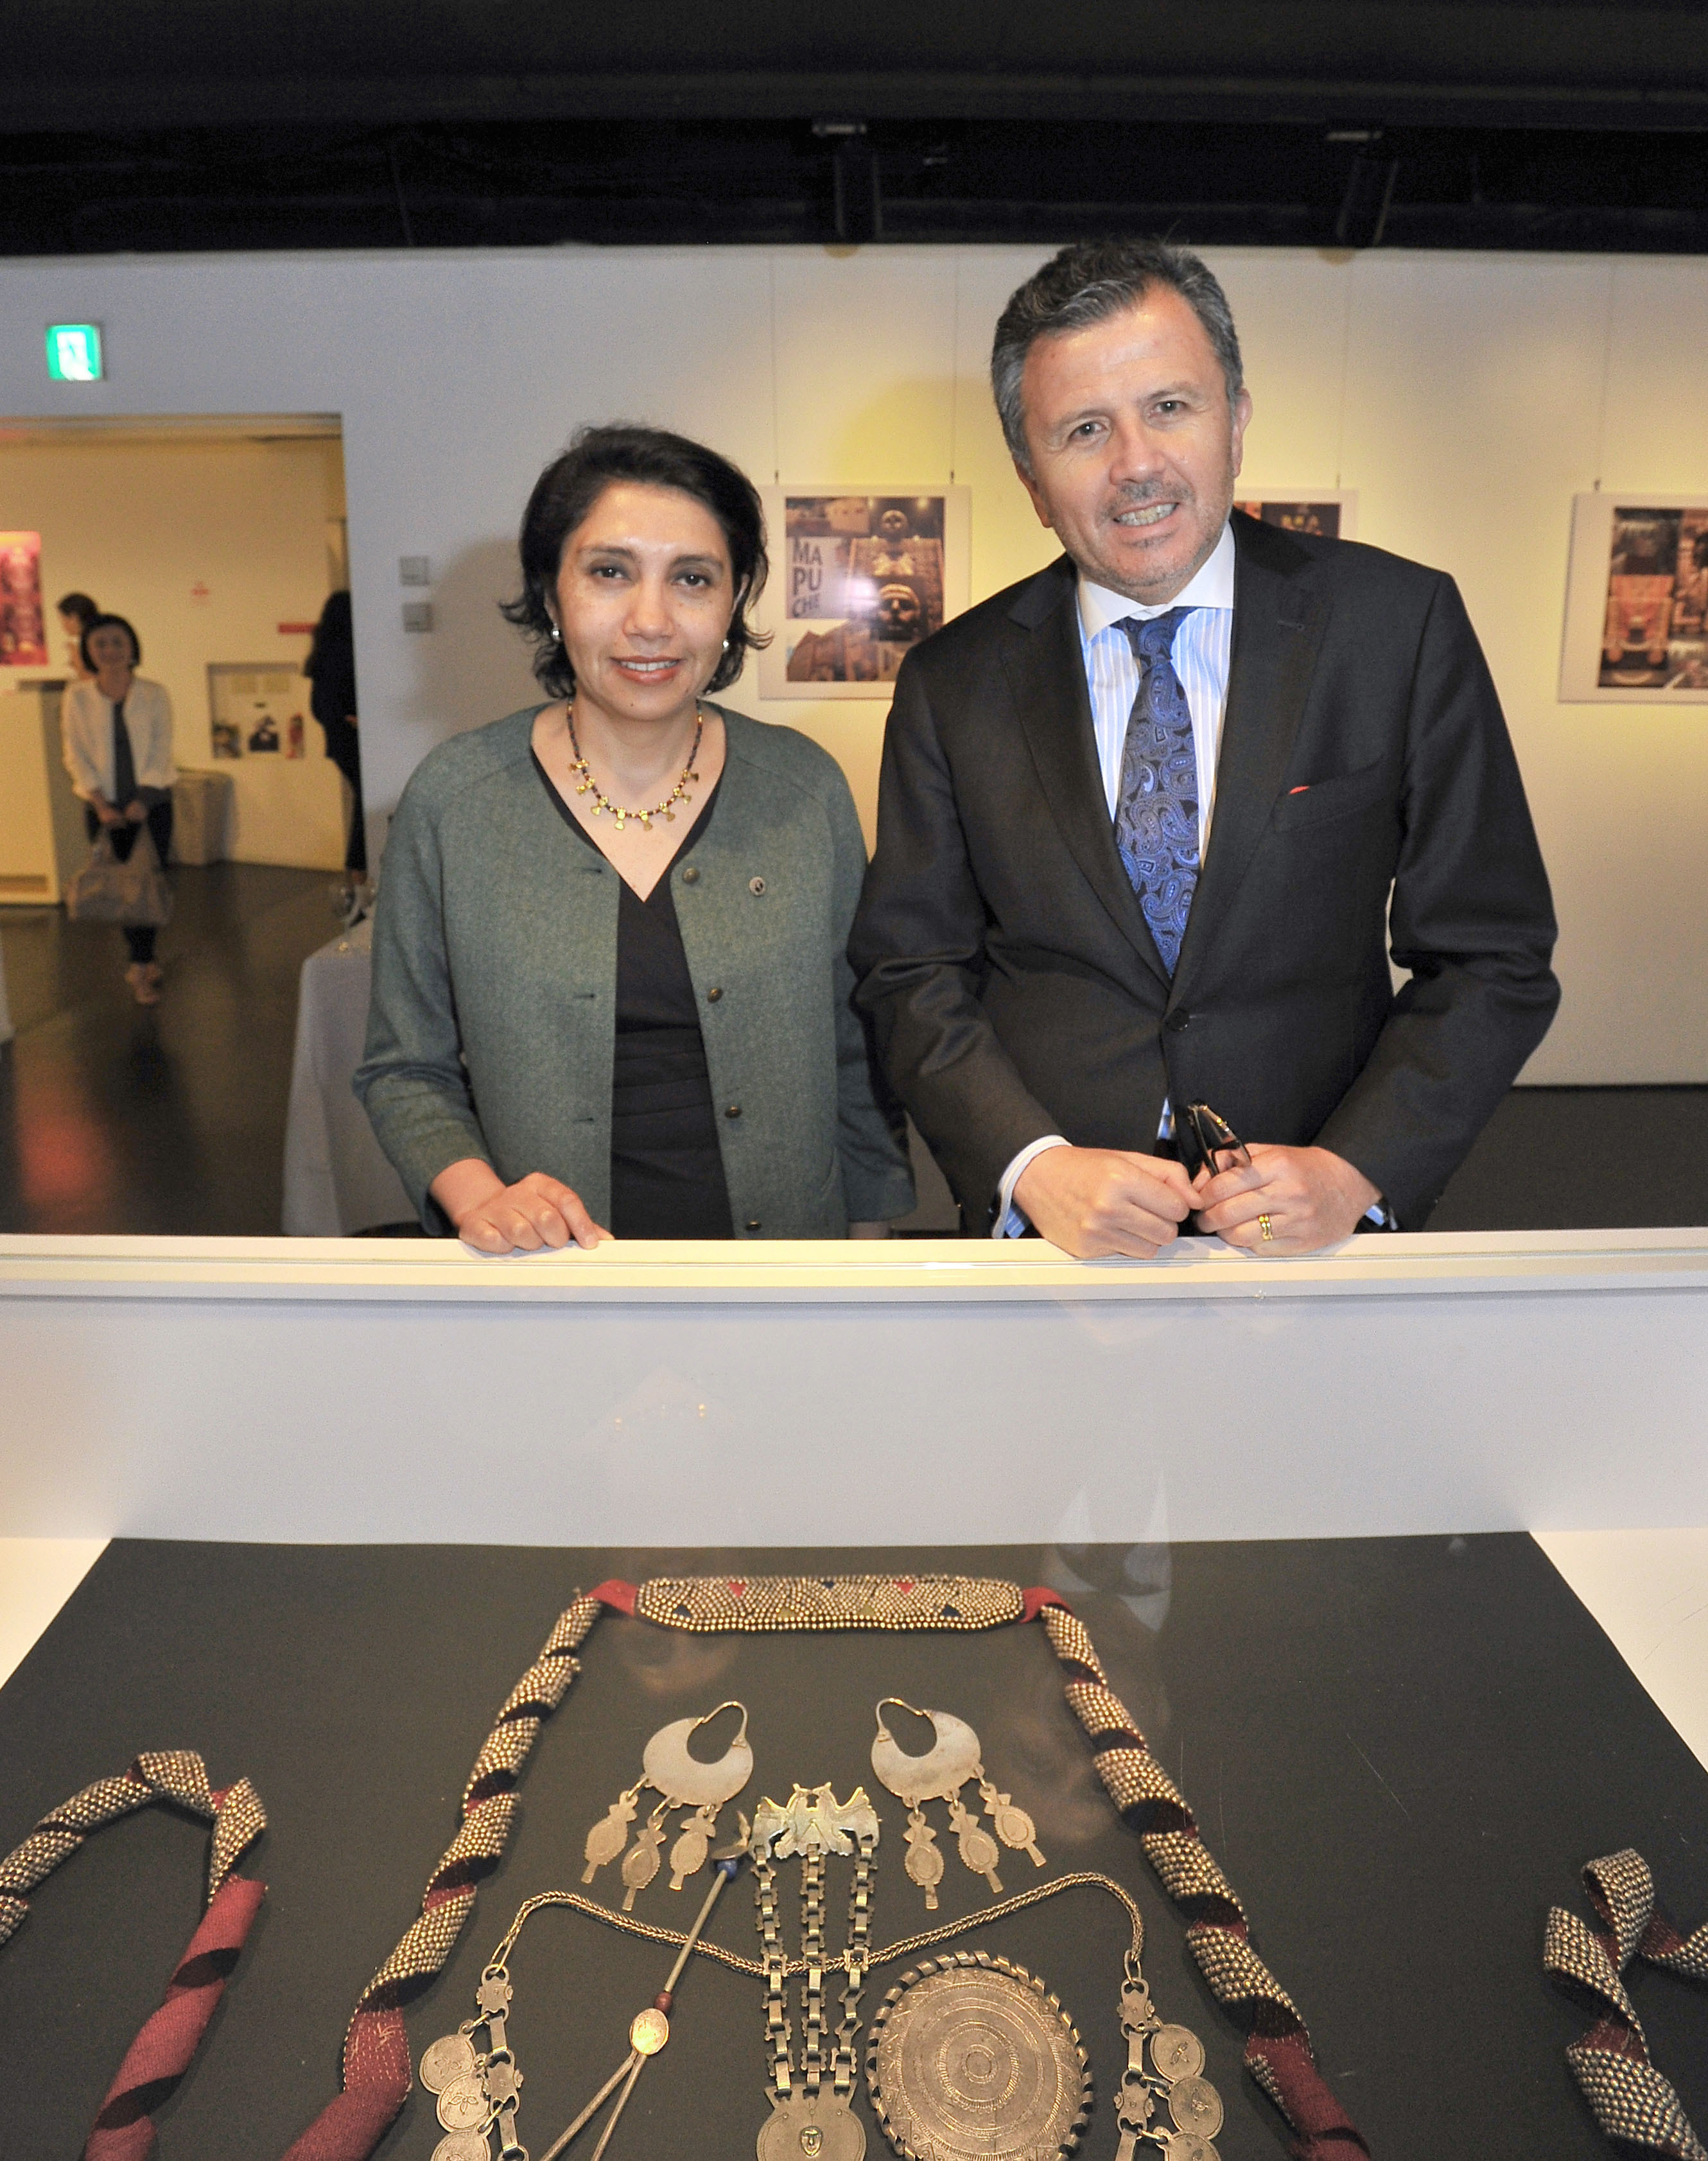 """Chilean Ambassador Gustavo Ayares (right) and Lorena Villegas, dean of Temuco Catholic University's Faculty of Arts and Humanities Chile, pose for a photo at the opening reception of an exhibition titled """"Dreams of Rutrafe: Mapuche Silver Ornaments,"""" which is on display at the Instituto Cervantes in Tokyo until July 17. 